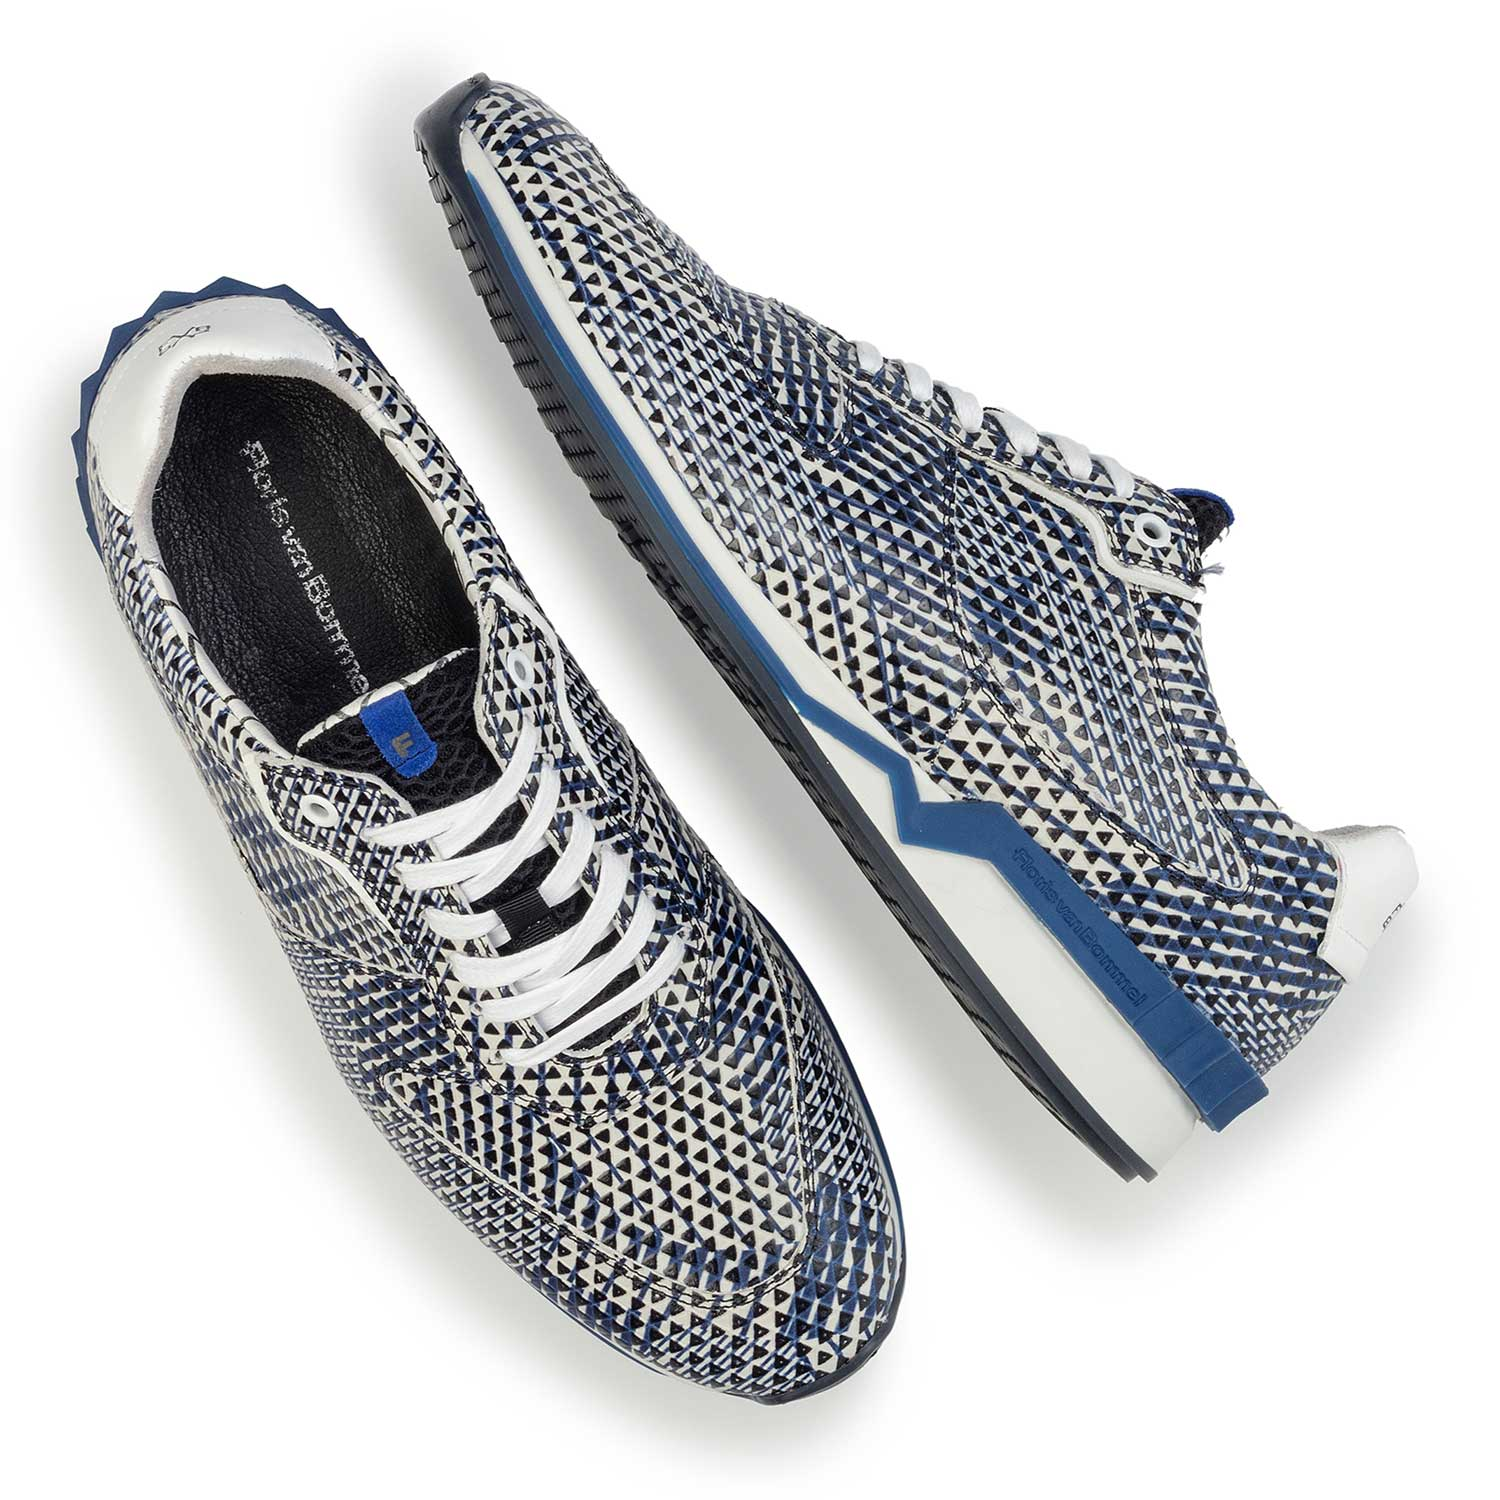 16225/02 - Blue/white patterned leather sneaker